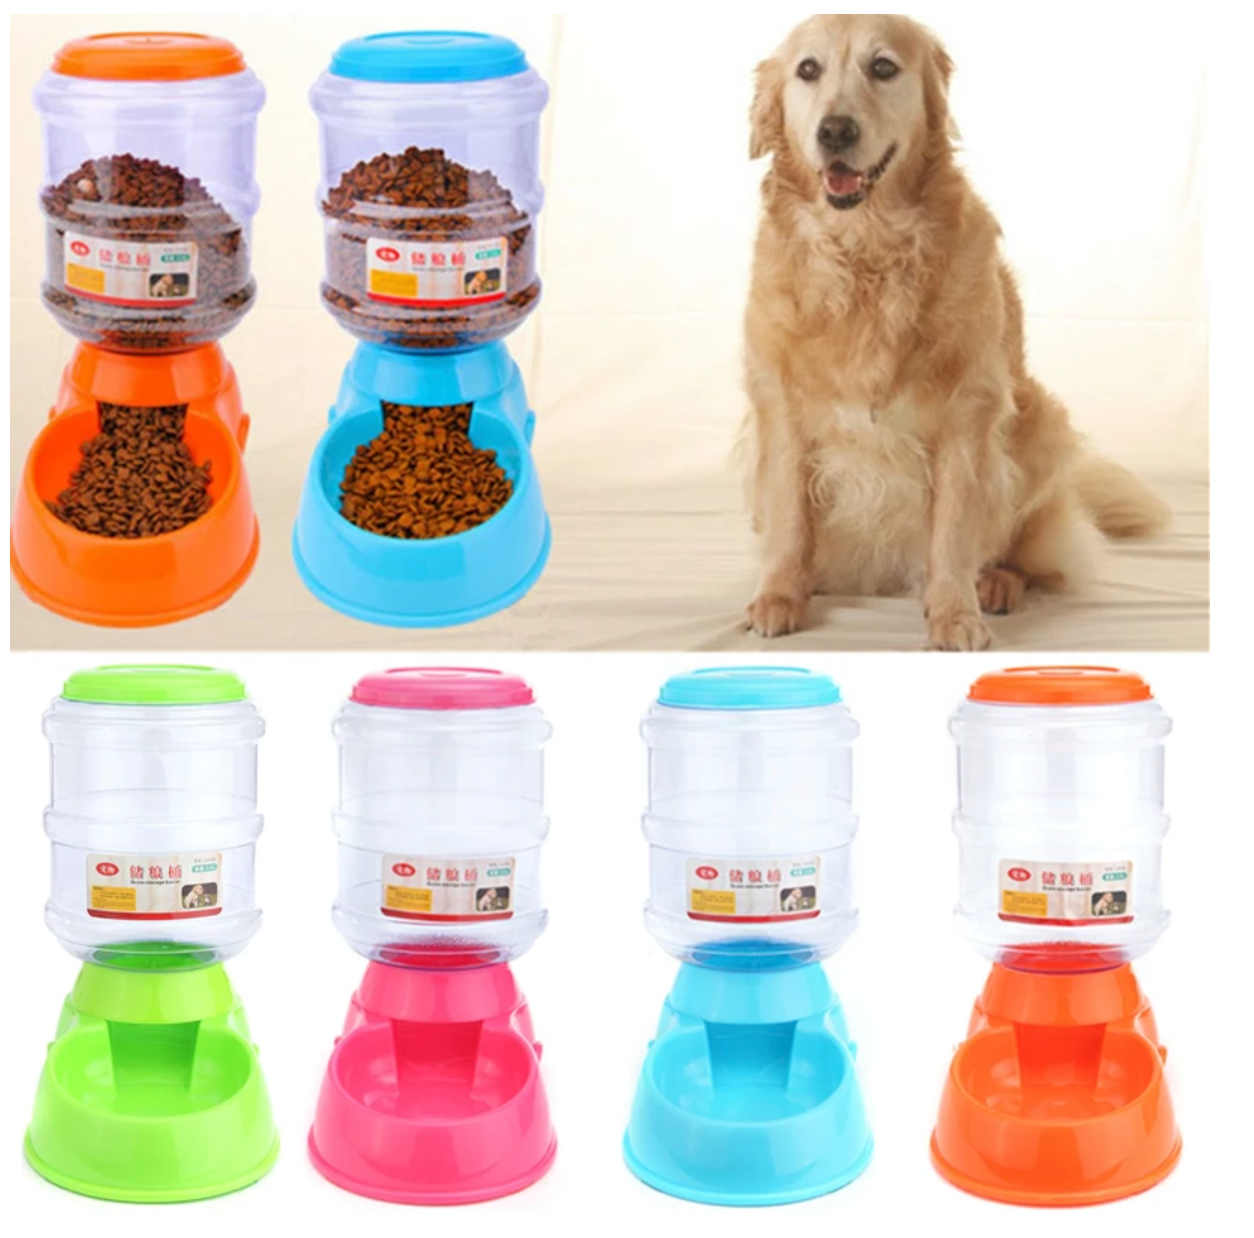 Medium Automatic Pet Food Dispenser Dog Cat Feeder Pet Bowl - No Batteries